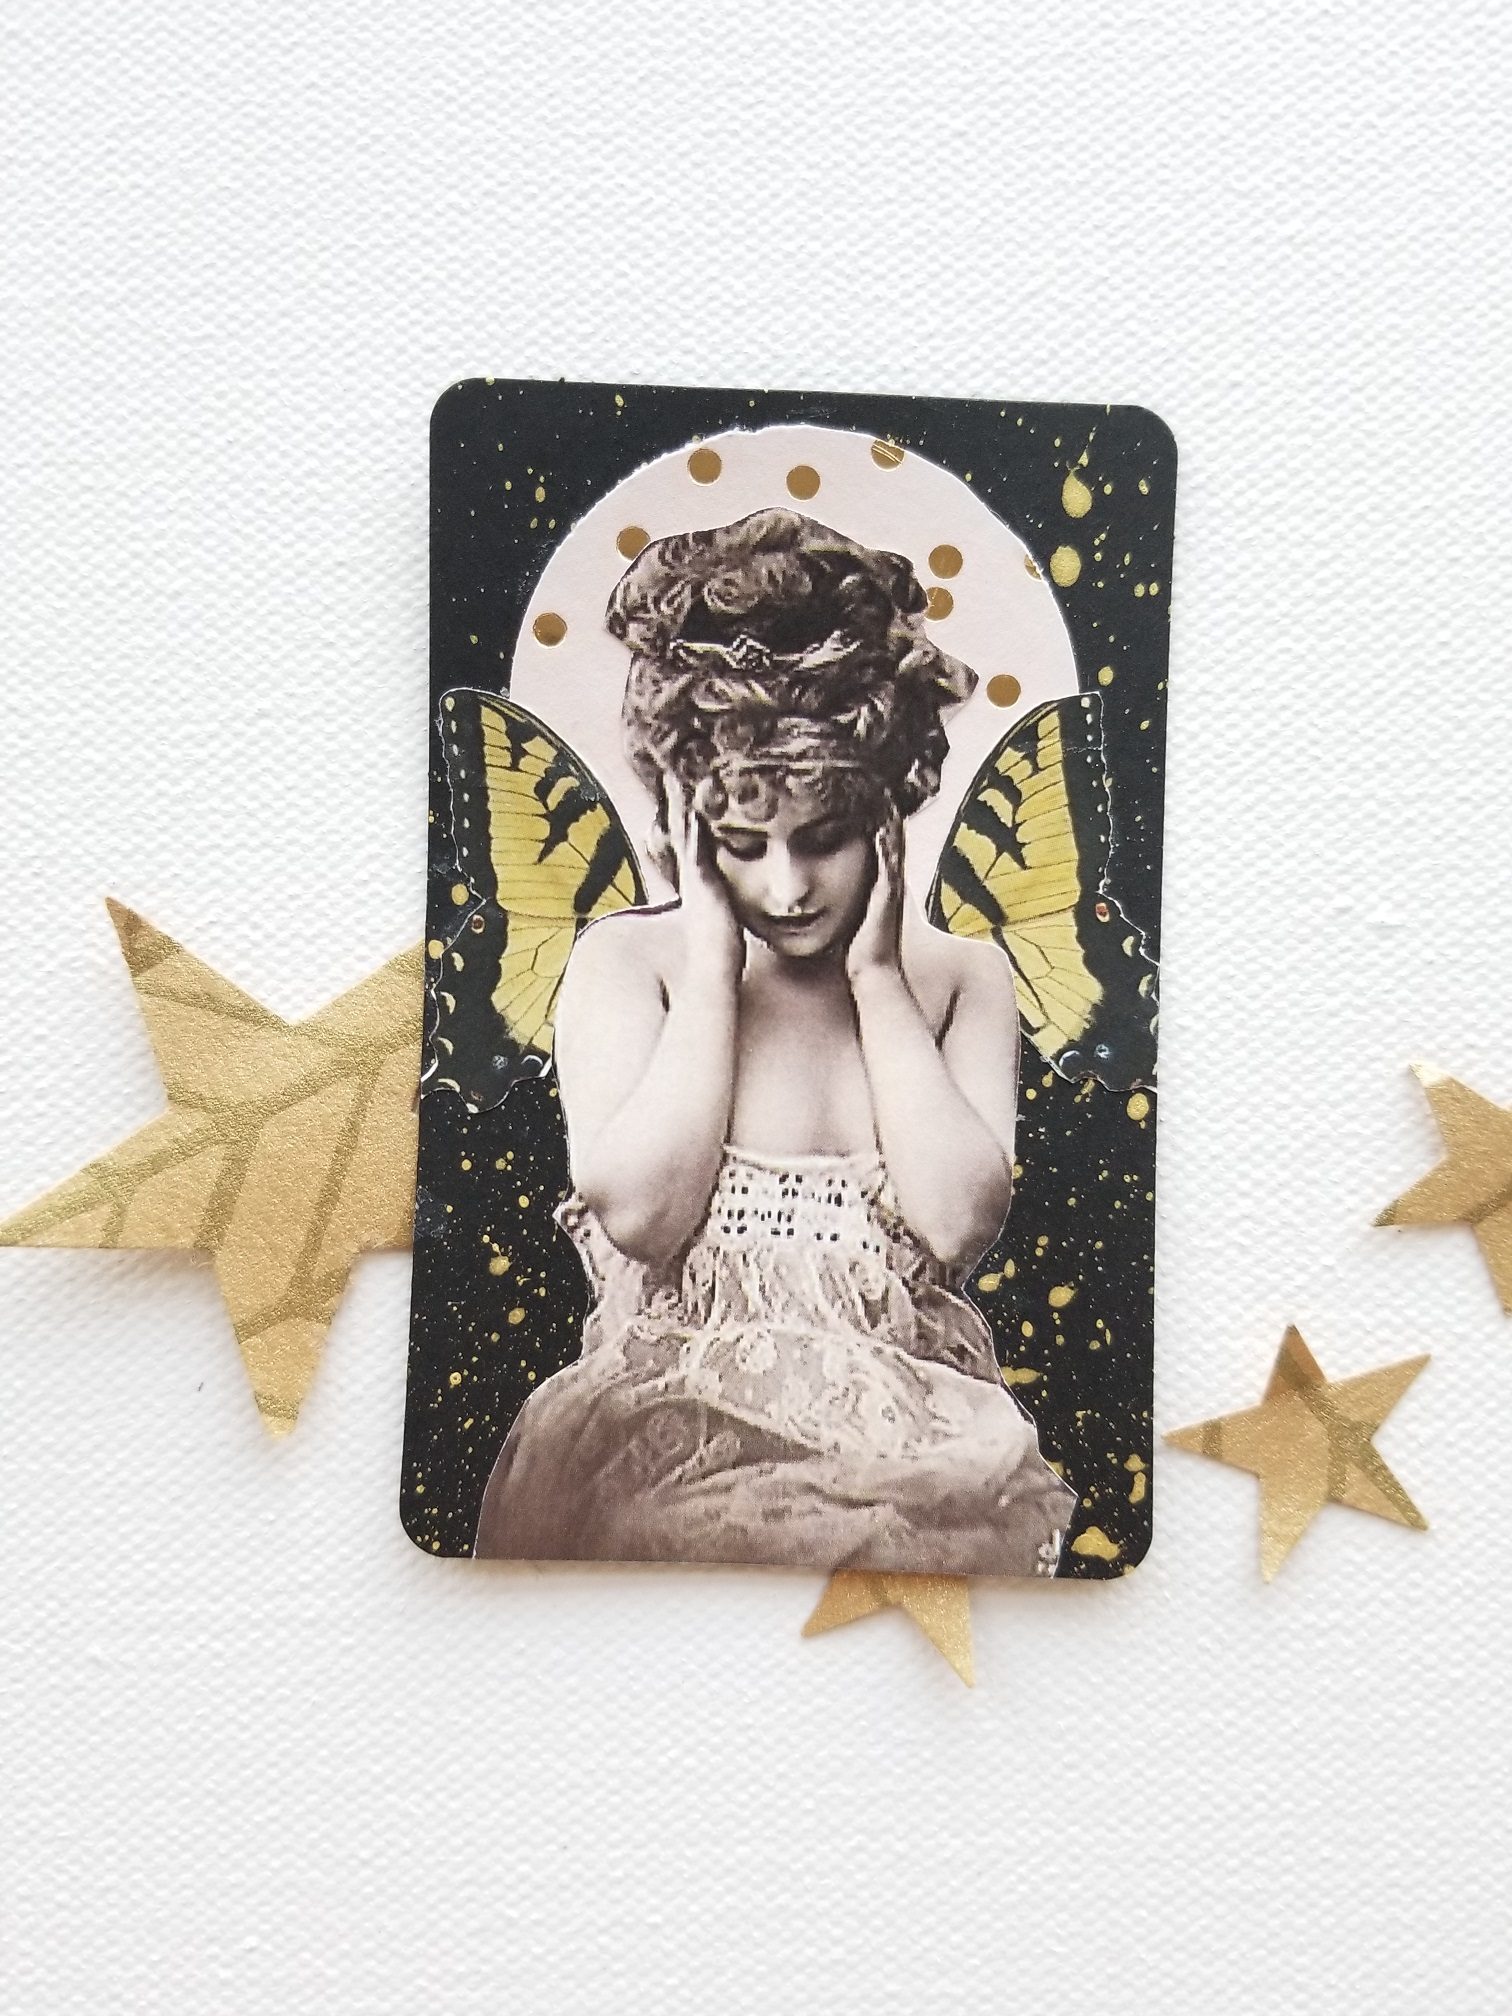 Galaxy Goddesses FortuneART Cards mixed media class by Kellee Wynne Studios small.jpg